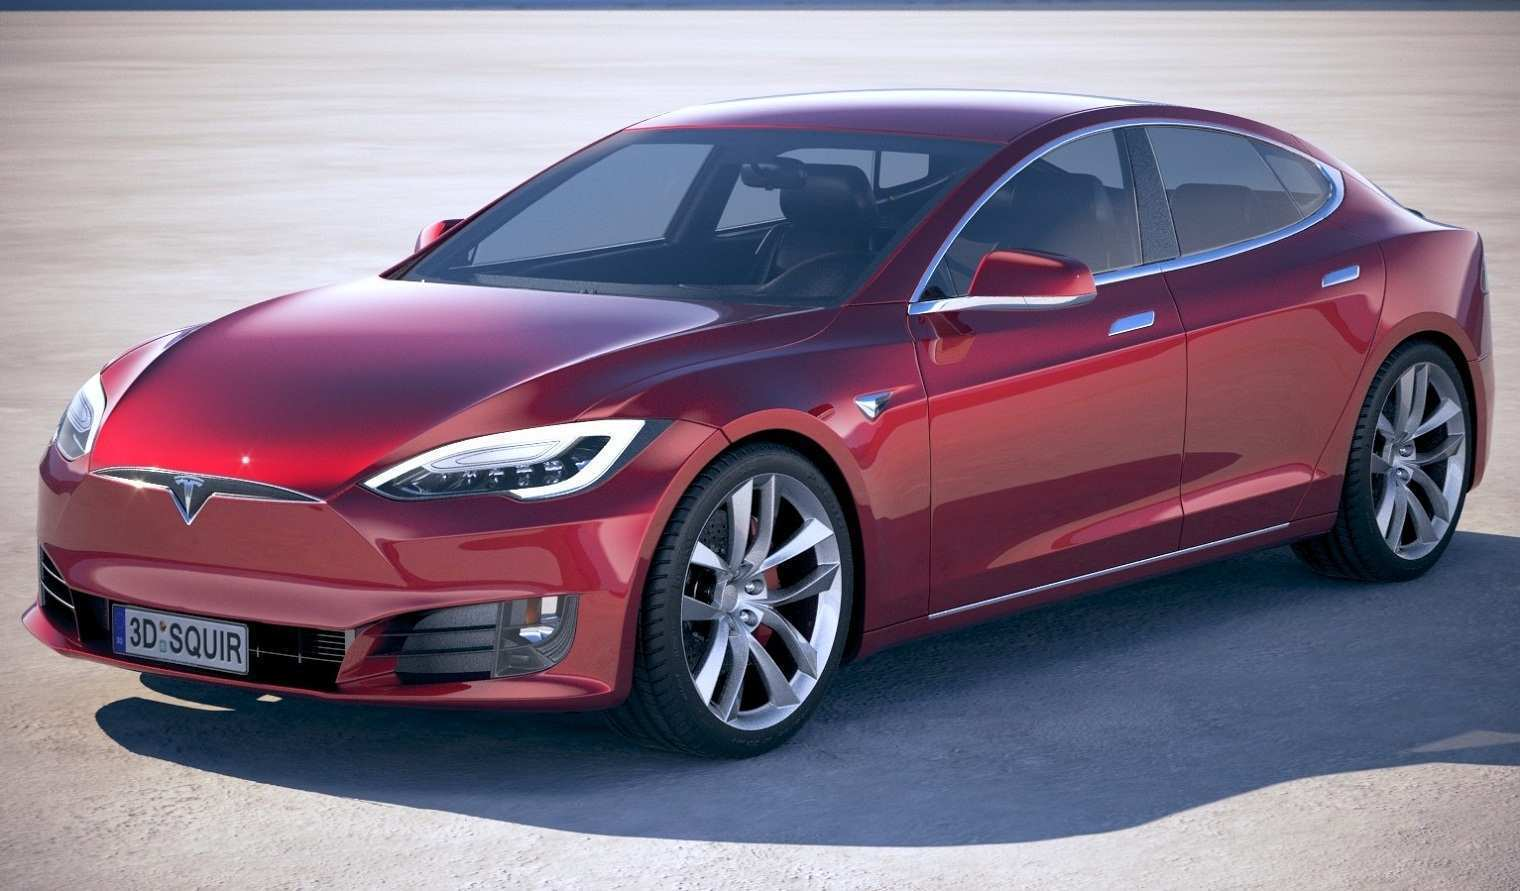 35 All New 2019 Tesla Model S Specs and Review for 2019 Tesla Model S